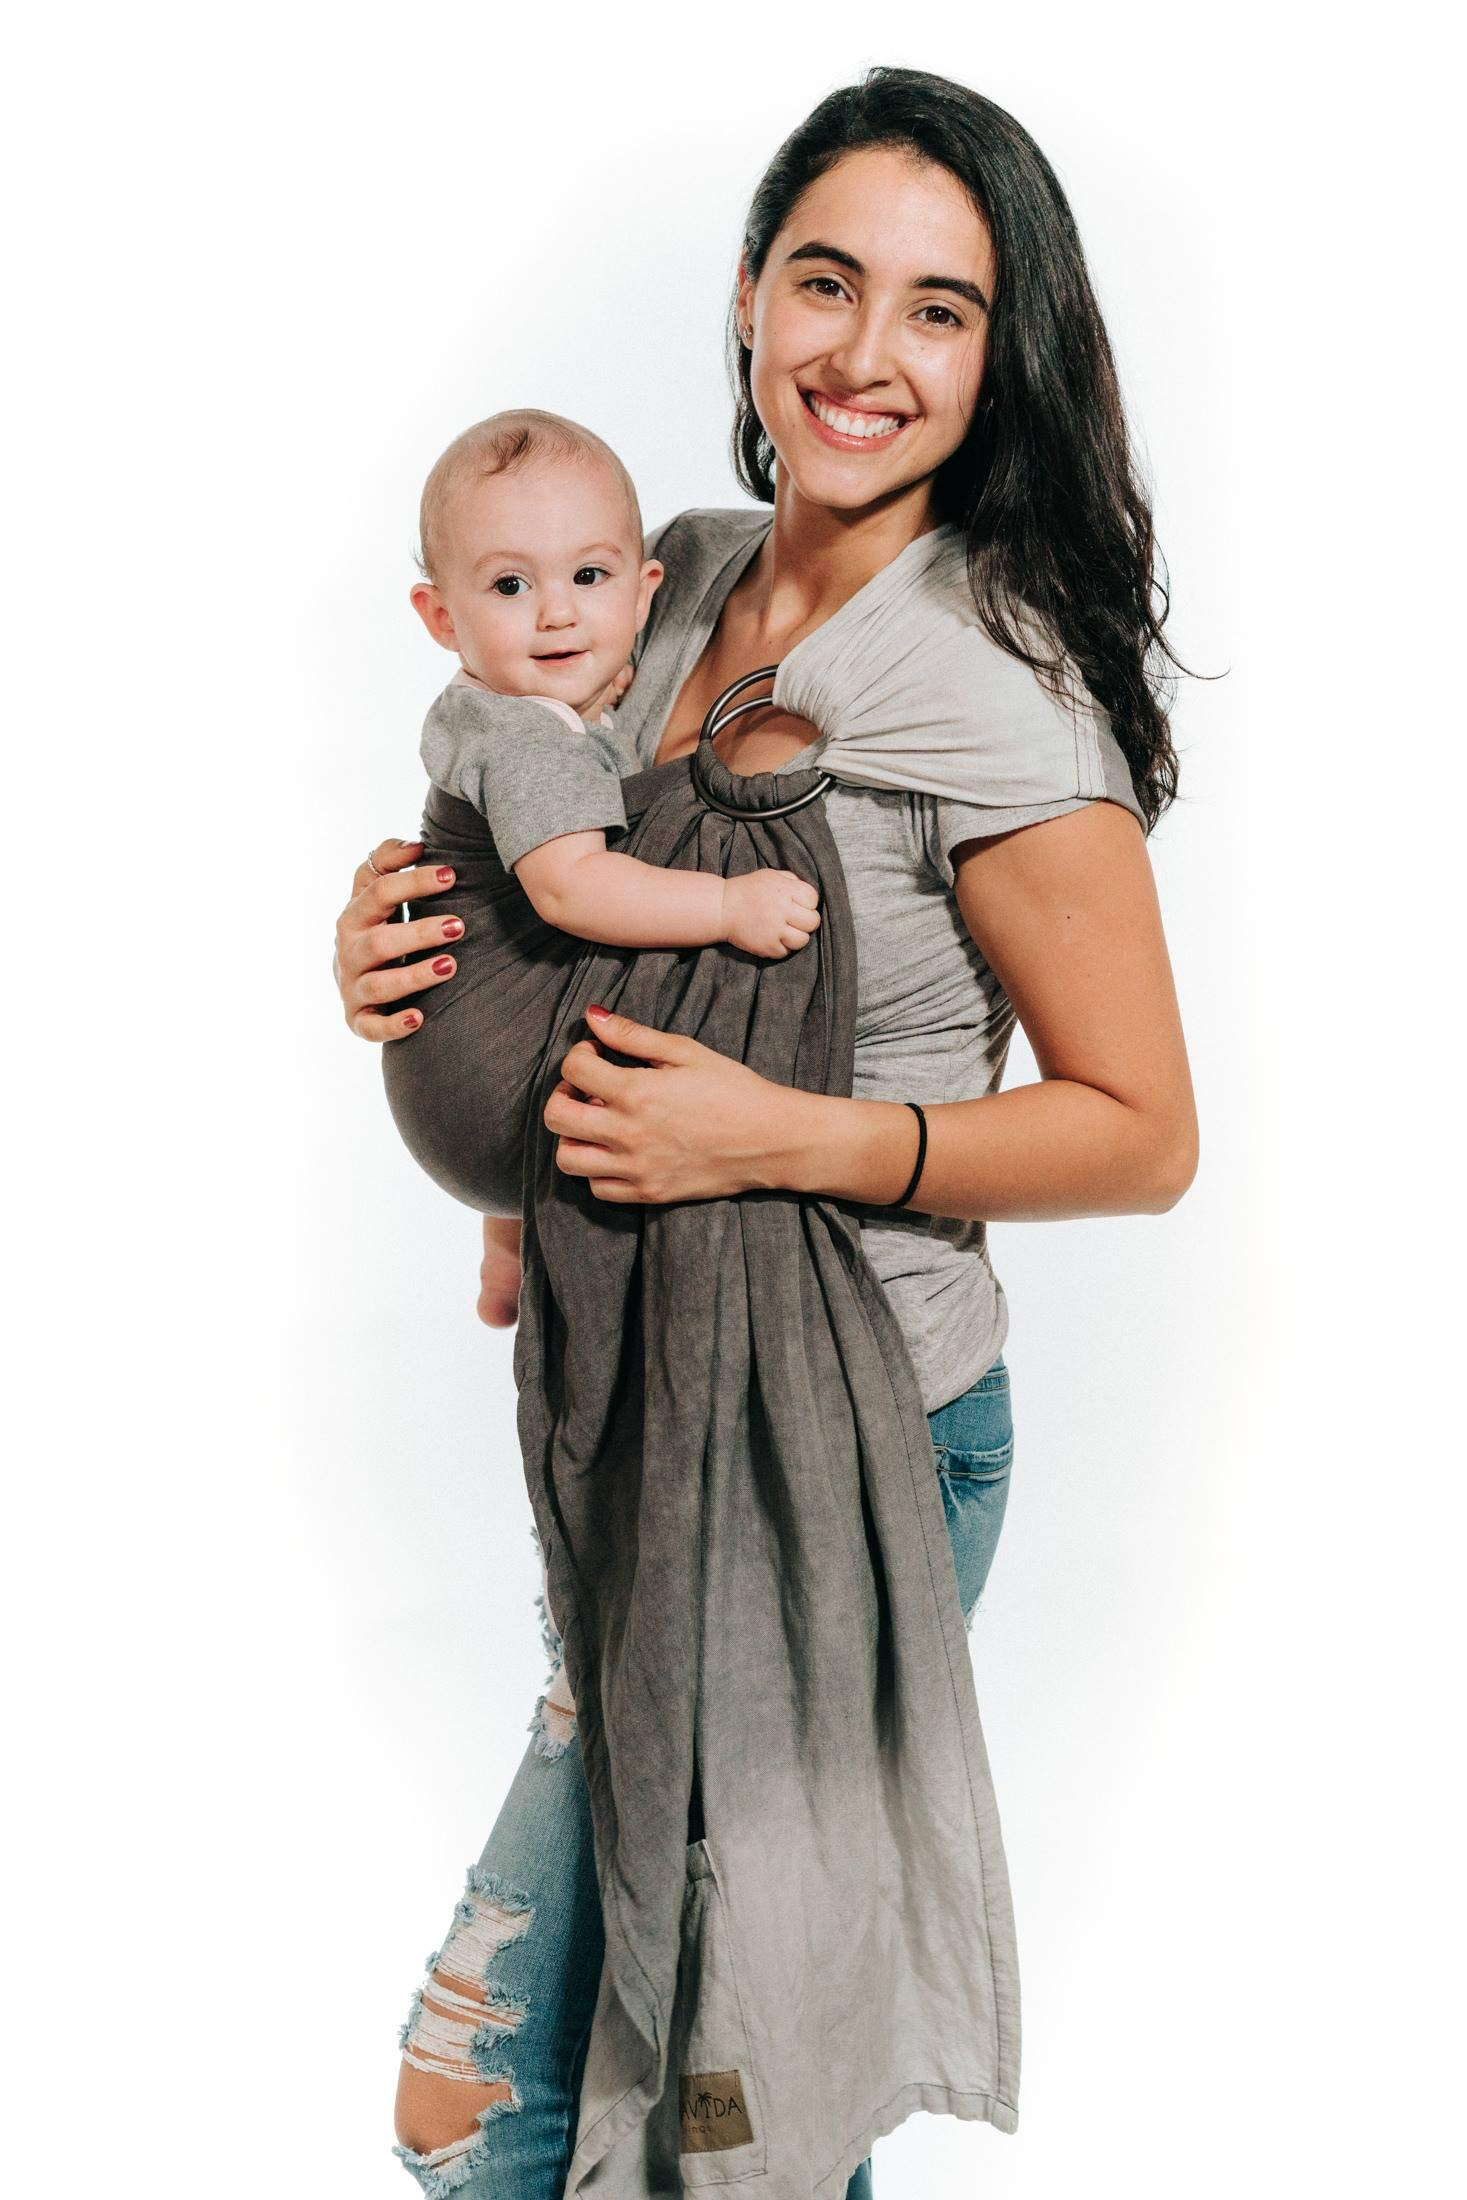 Luxury Ring Sling Baby Carrier – Extra Soft Bamboo & Linen Fabric, Full Support and Comfort for Newborns, Infants & Toddlers - Best Baby Shower Gift - Great for Men Too (Storm Cloud)